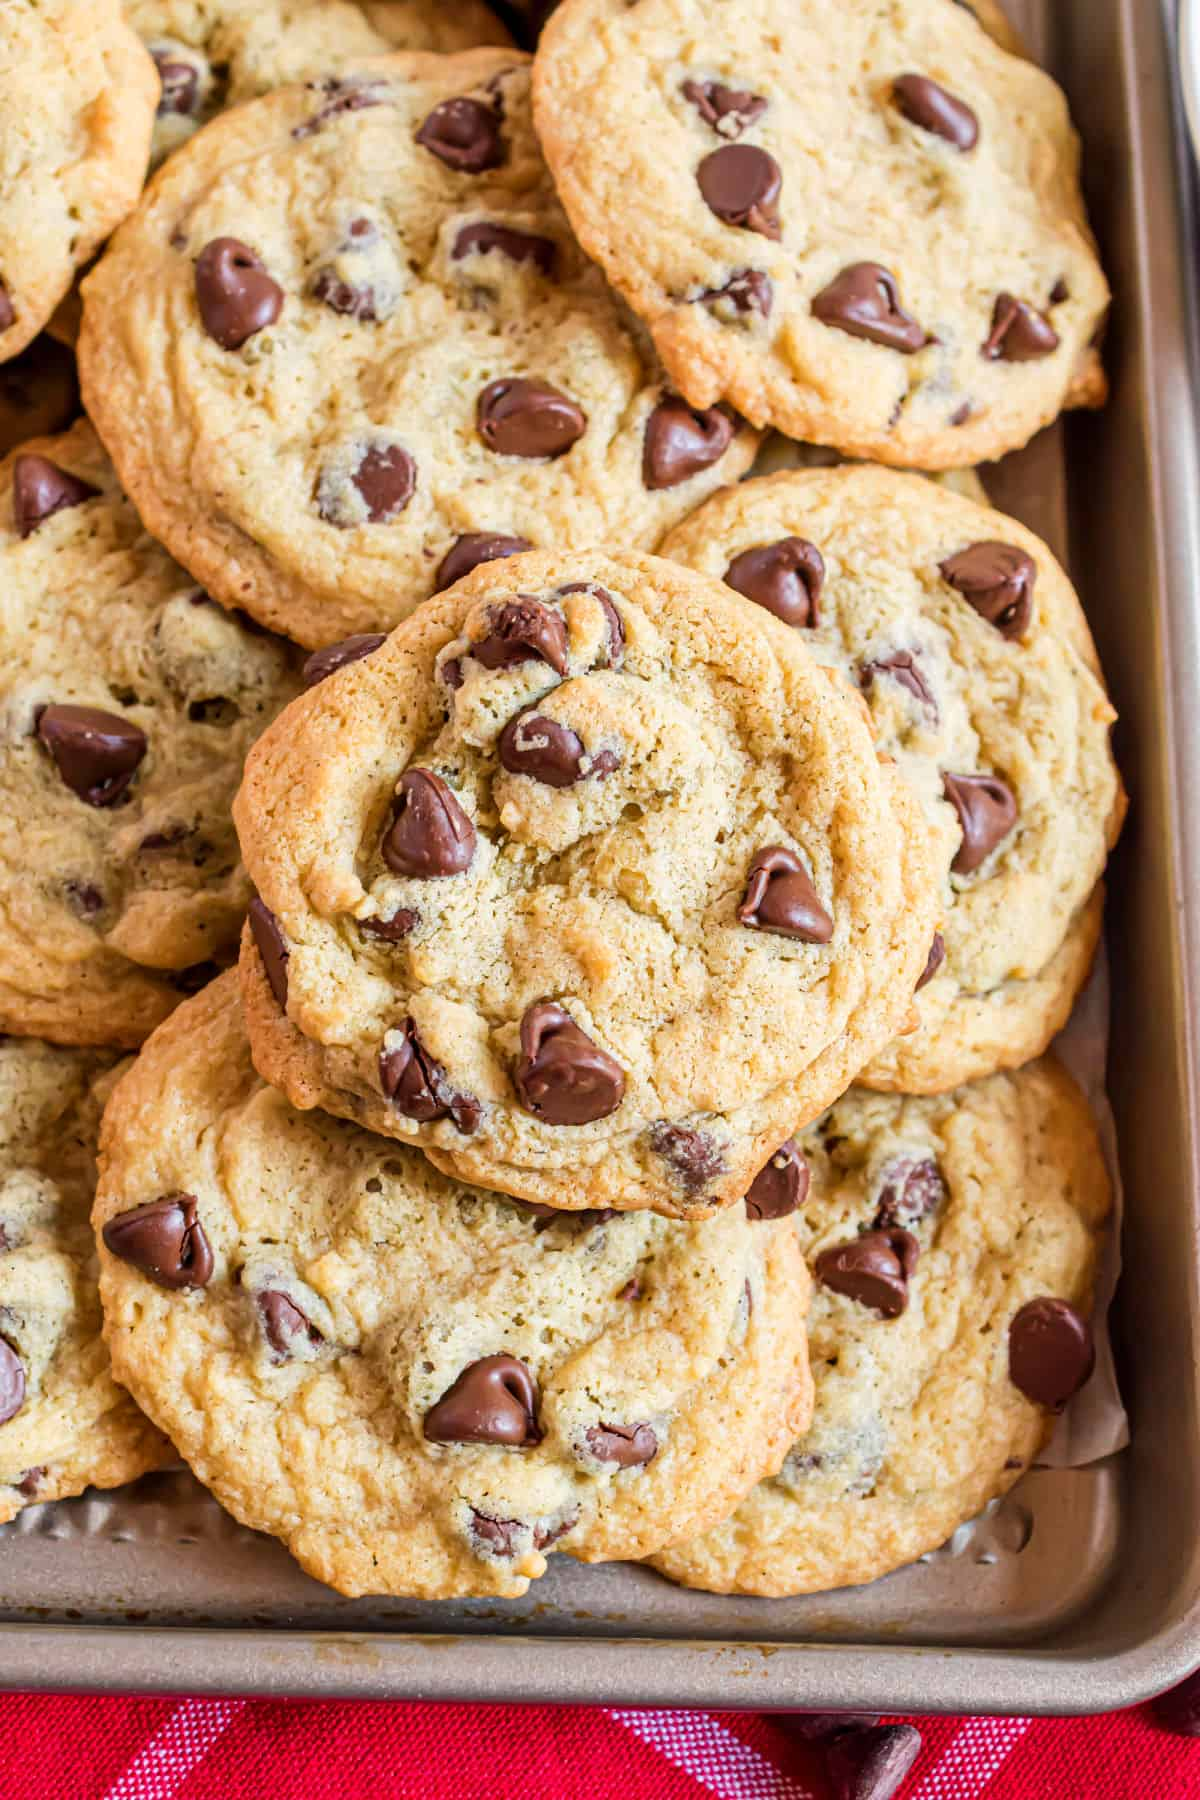 Baking sheet stacked with chocolate chip cookies.